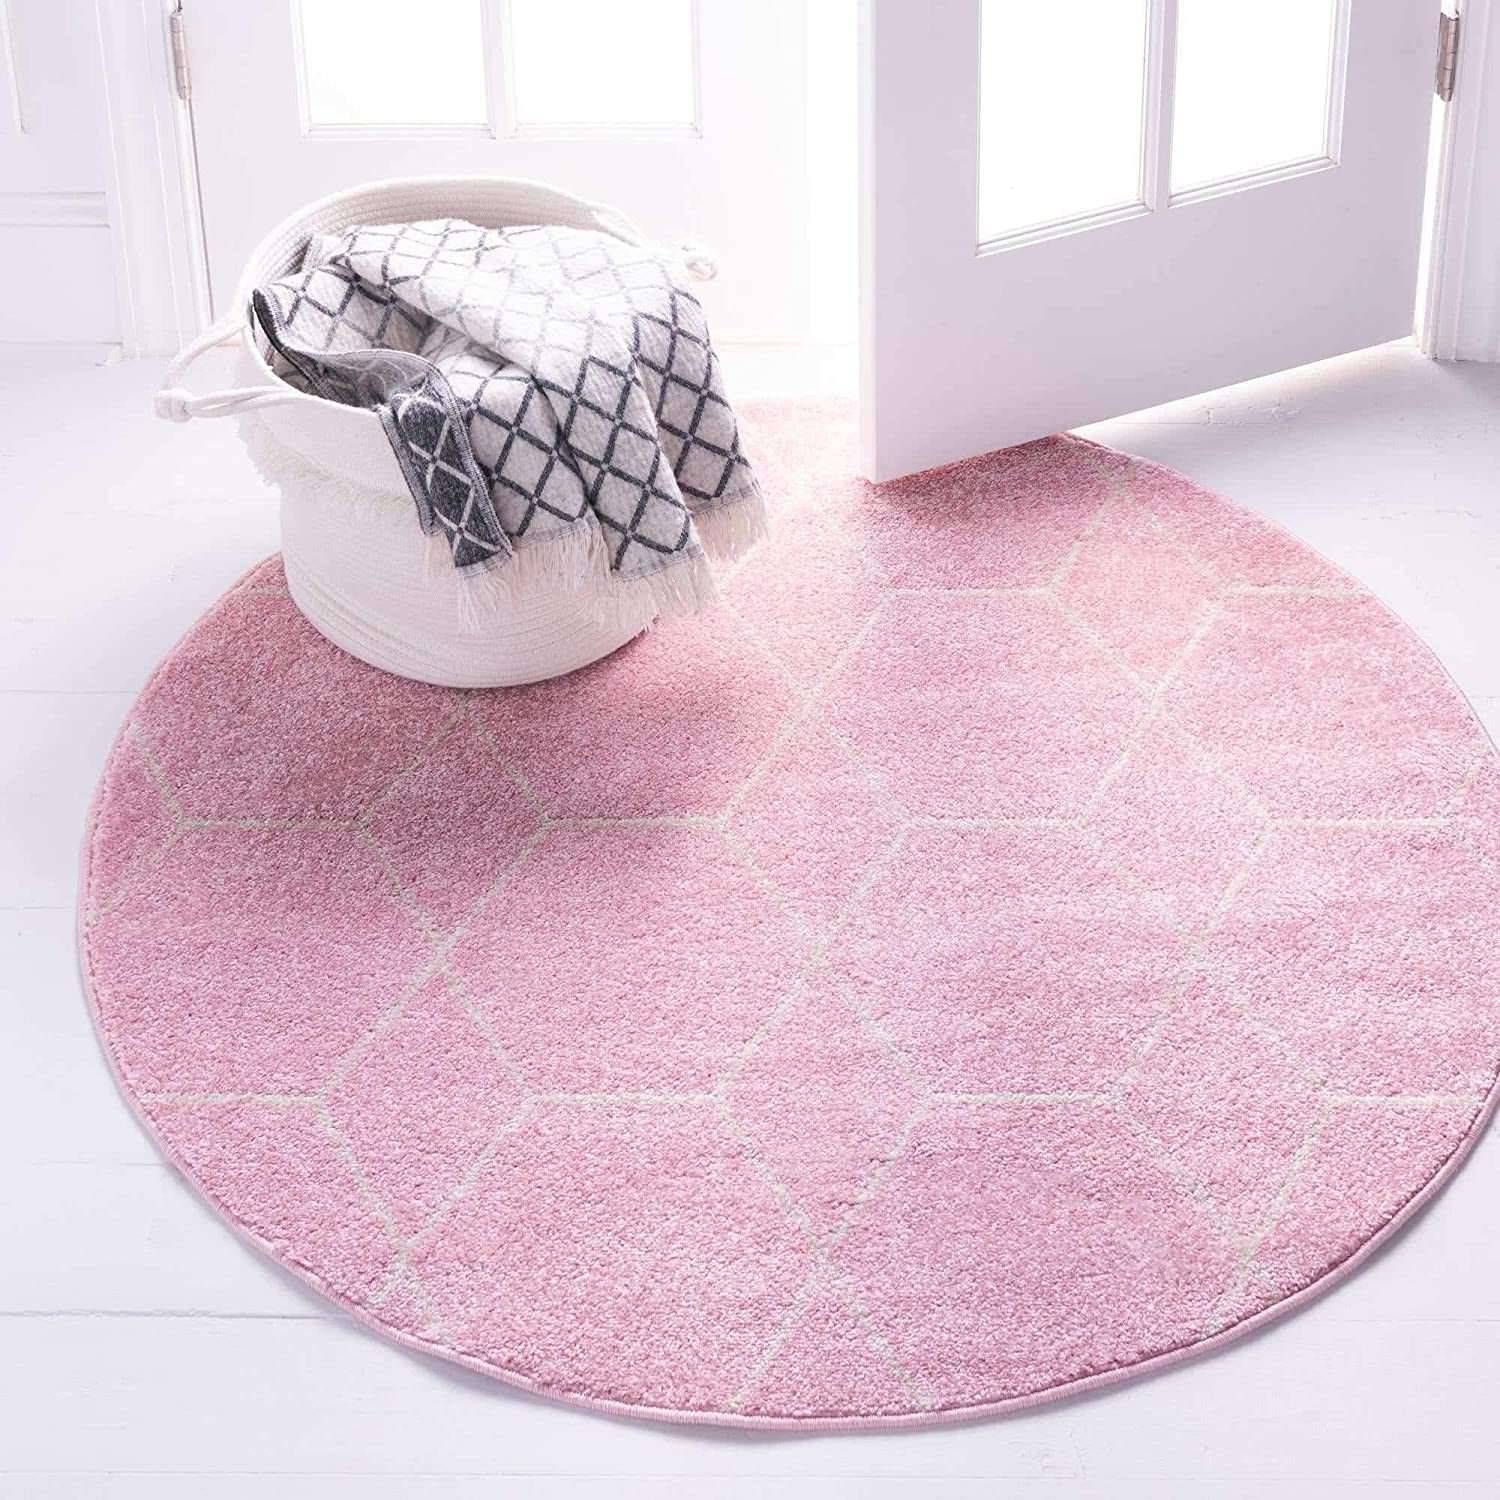 Unique Loom Trellis Frieze Collection Lattice Moroccan Geometric Modern Runner Rug Trf002 6 Feet Light Pink Ivory Furniture Decor